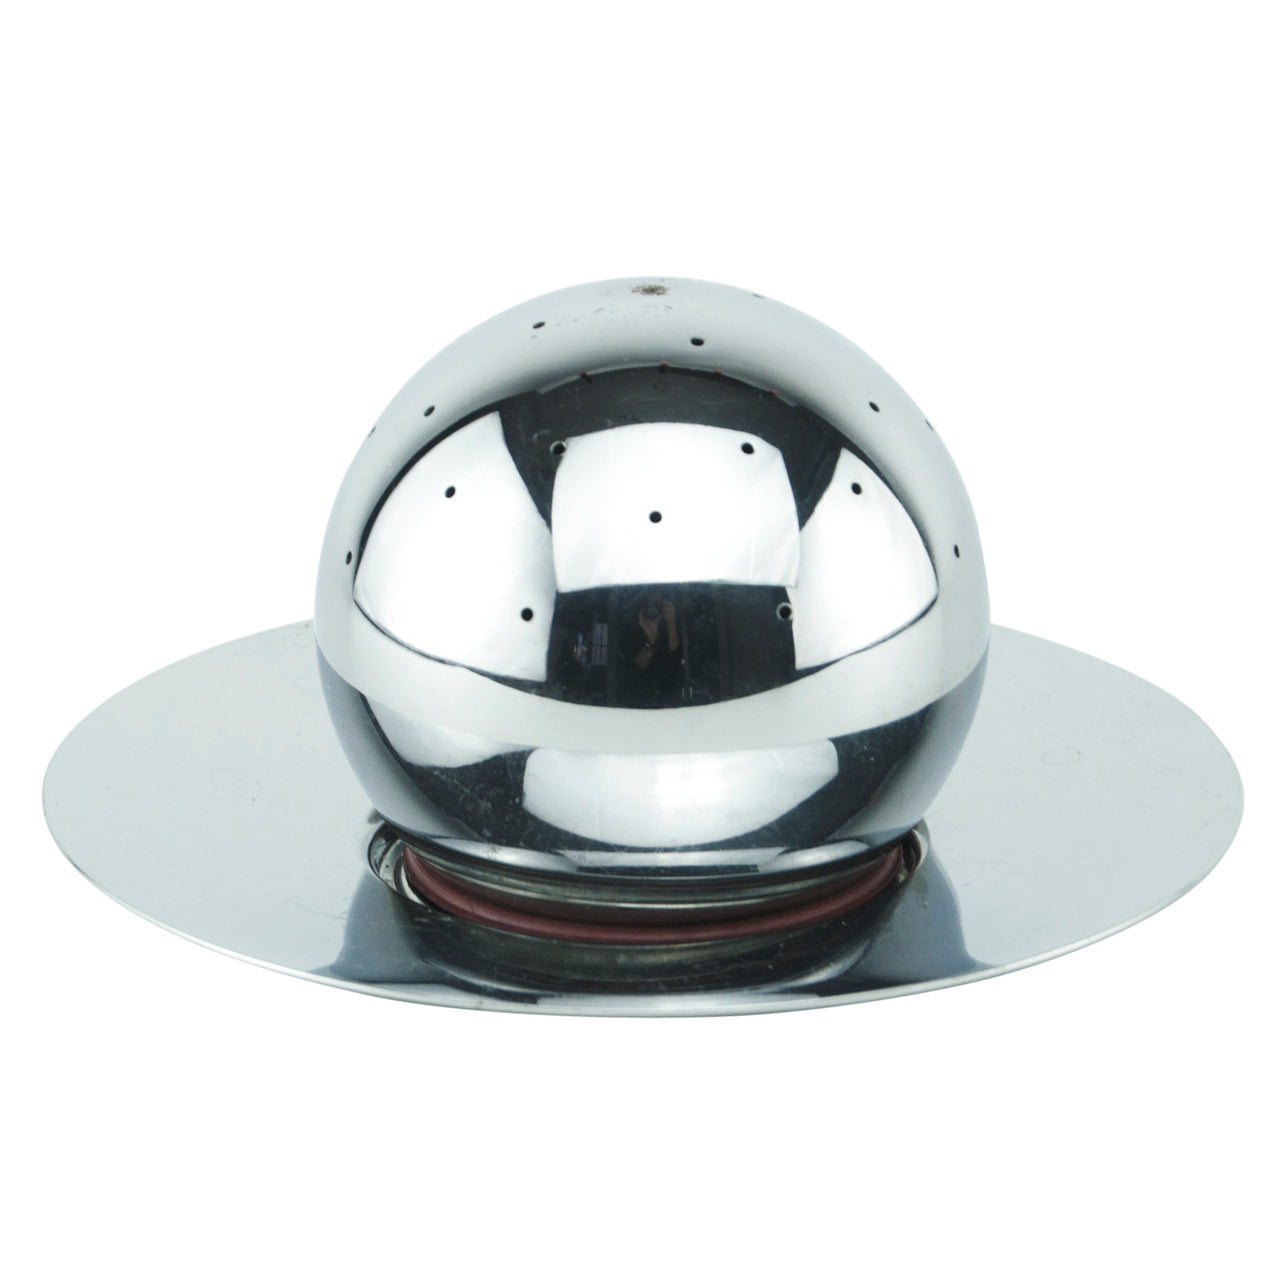 Chase Chrome Ball Toothpick Holder Set | The Hour Shop Vintage